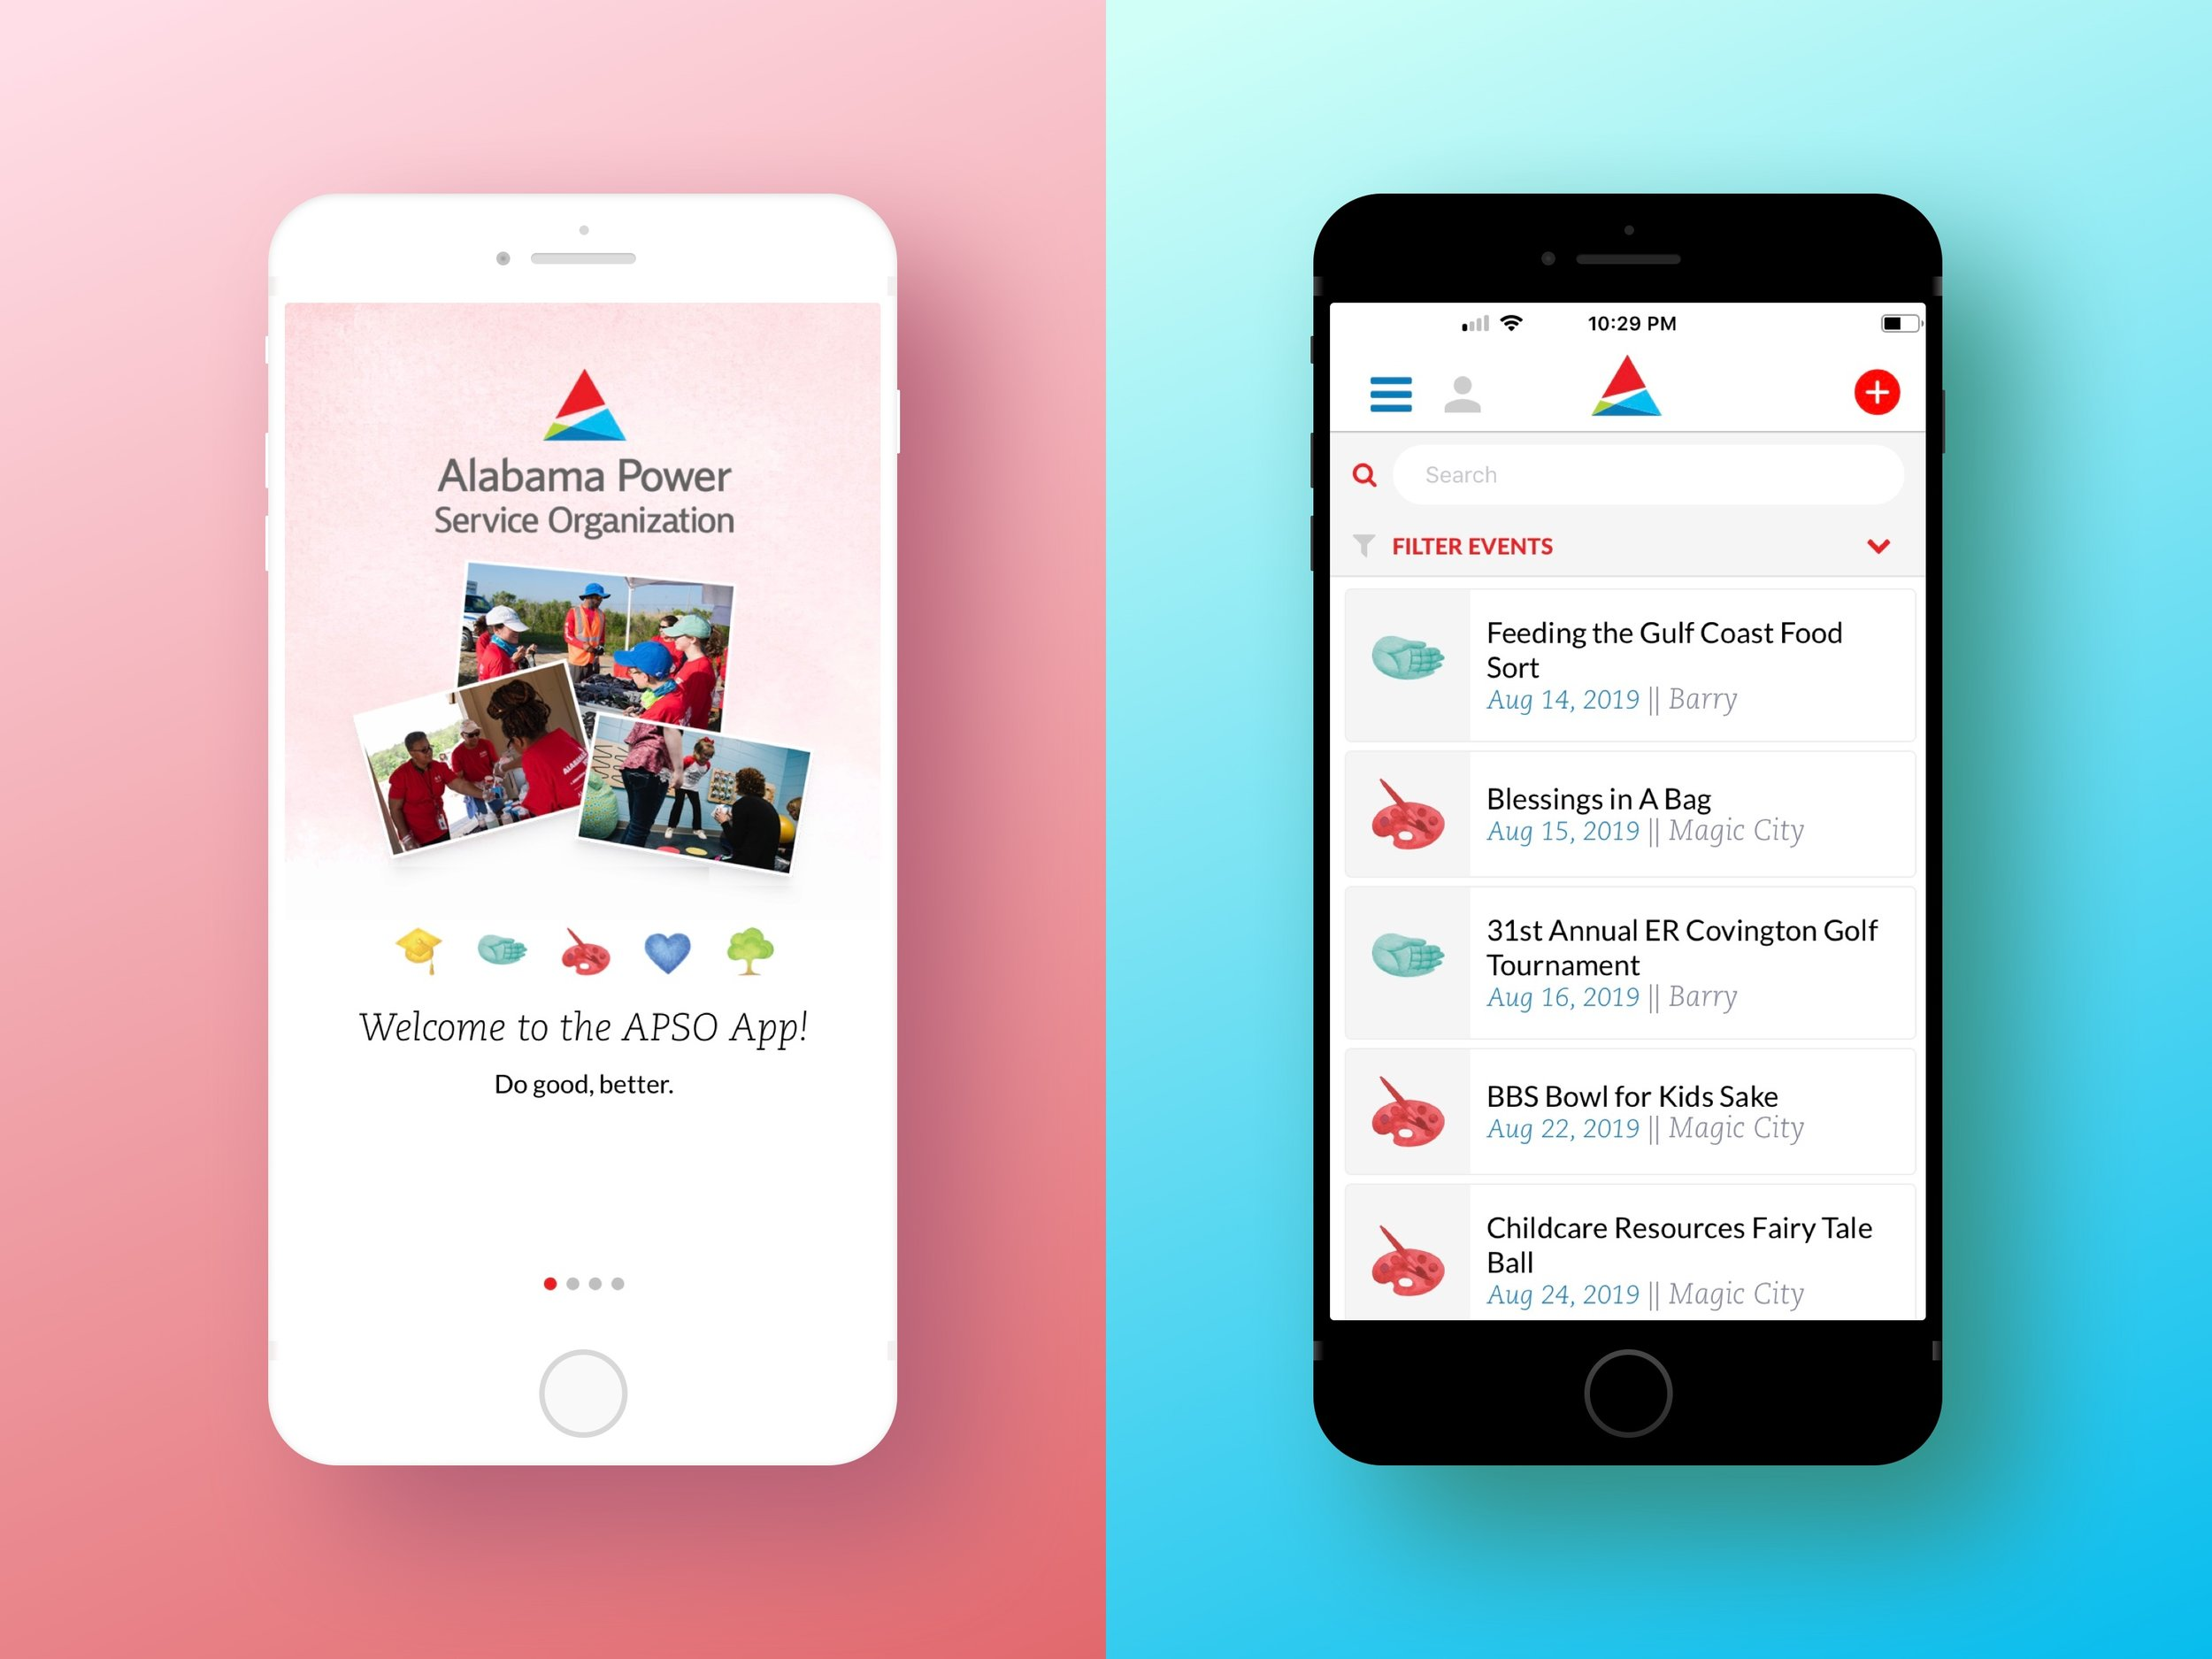 Alabama Power Service Organization App - Enables Alabama Power volunteers to gain insight into new ways to help others.Laravel, React Native, Product Management